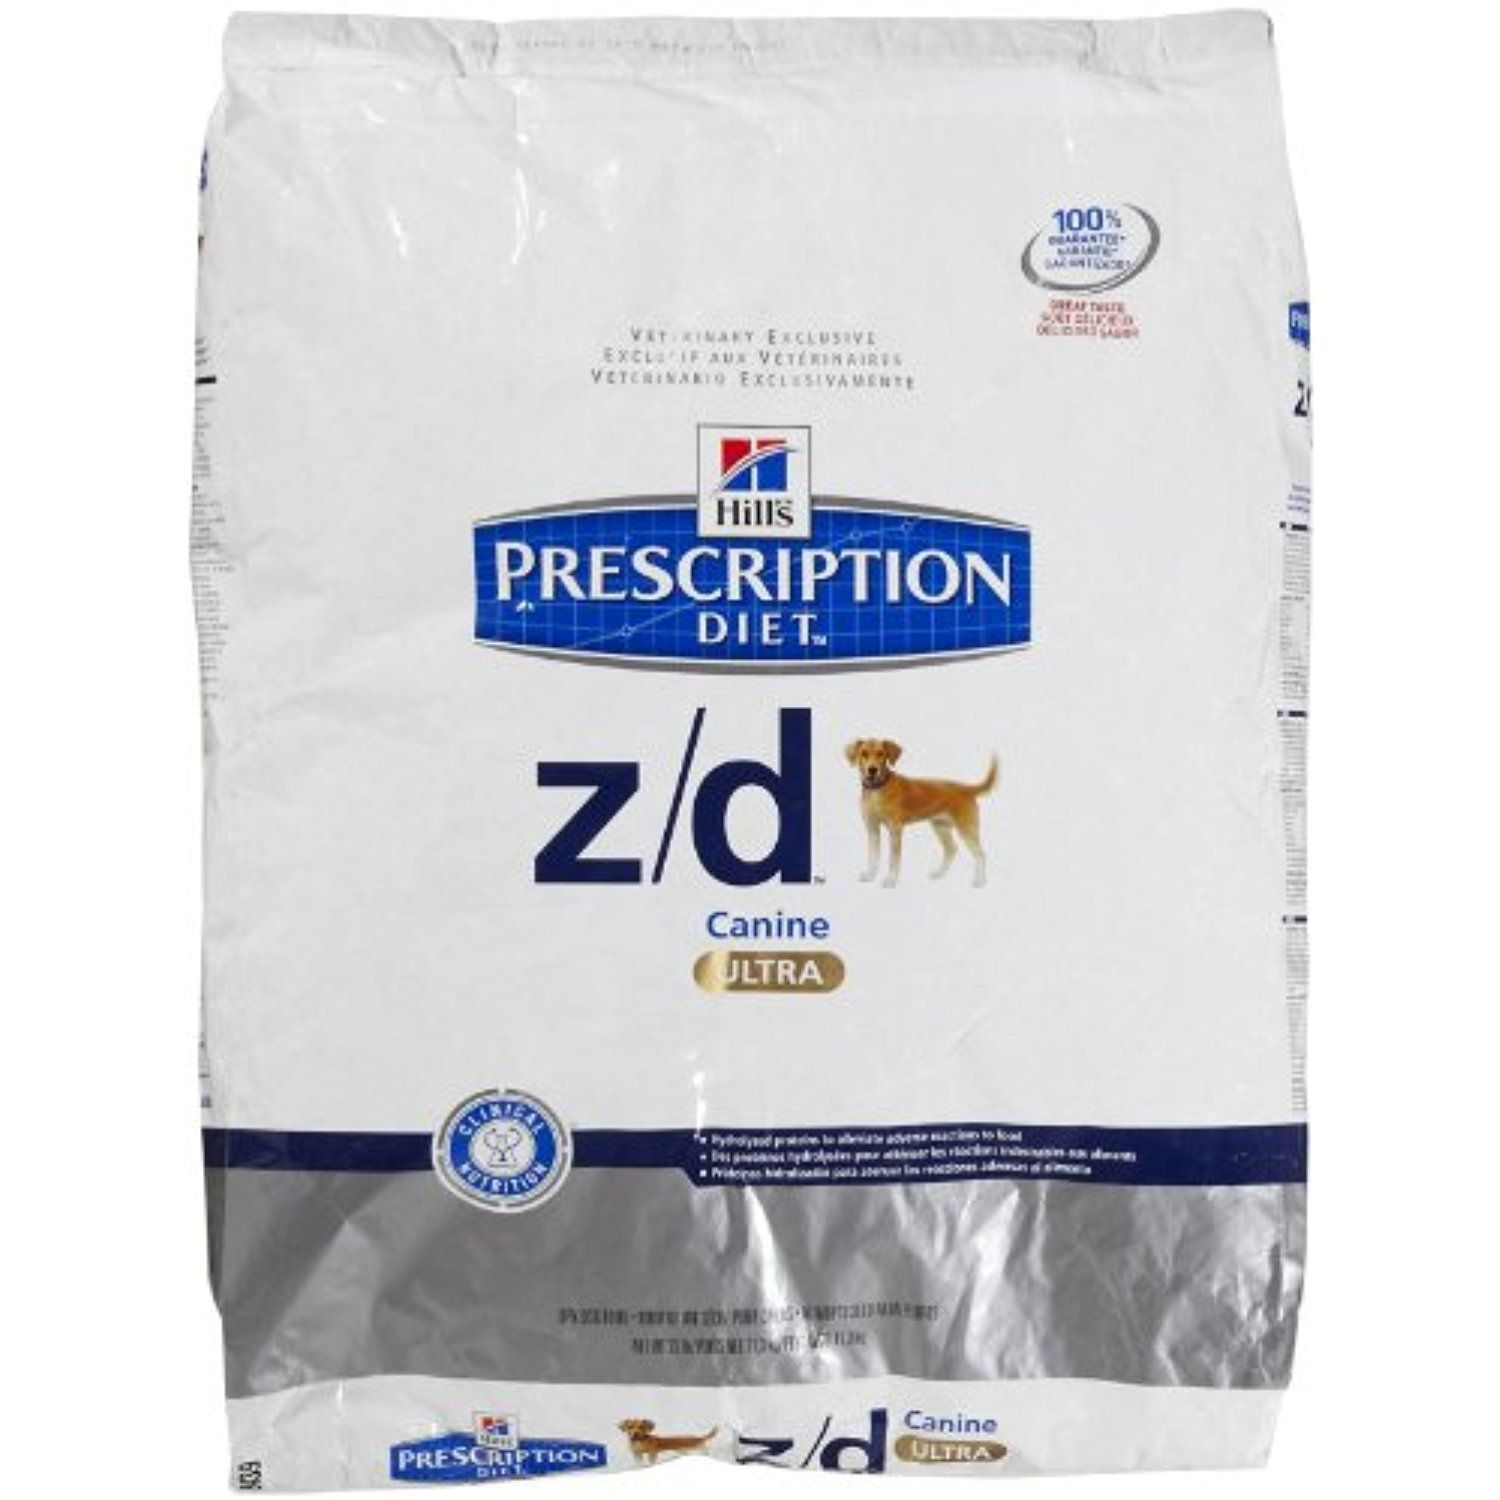 Hill's Prescription Diet z/d Canine Ultra AllergenFree